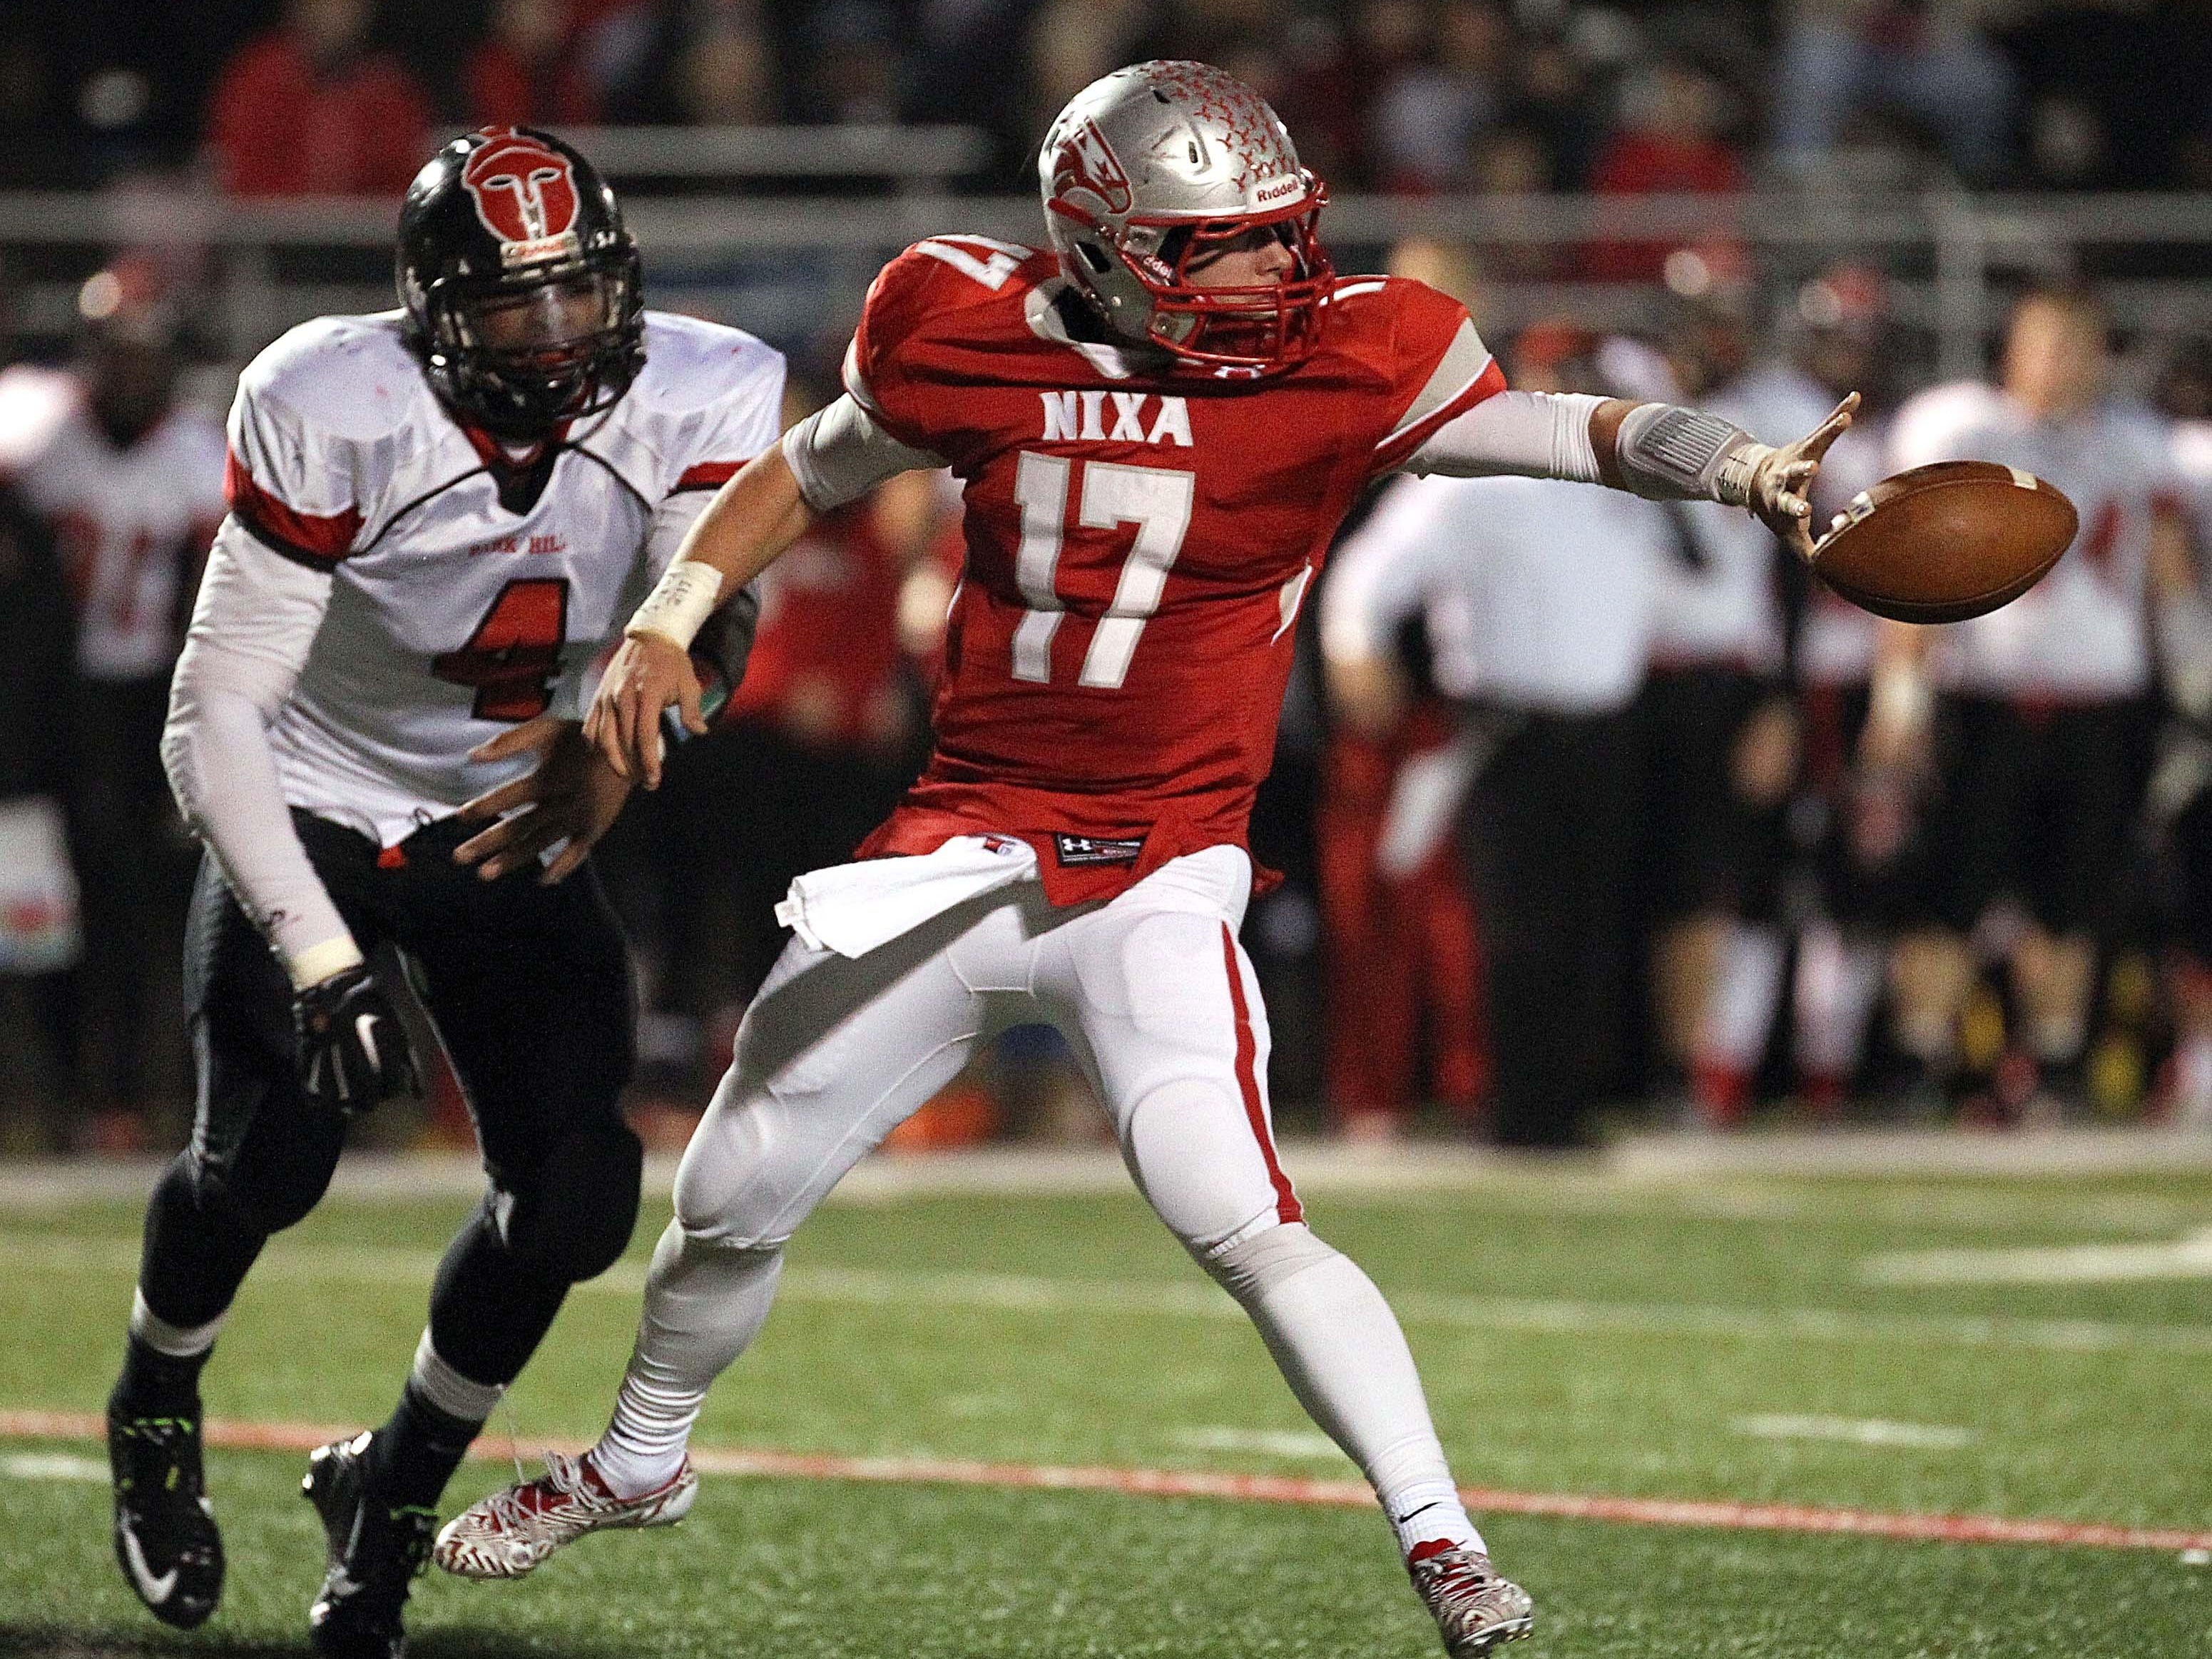 Nixa's Logan Tyler verbally committed to Florida State as a placekicker, but has one season as a high school quarterback and strong safety ahead in 2015.